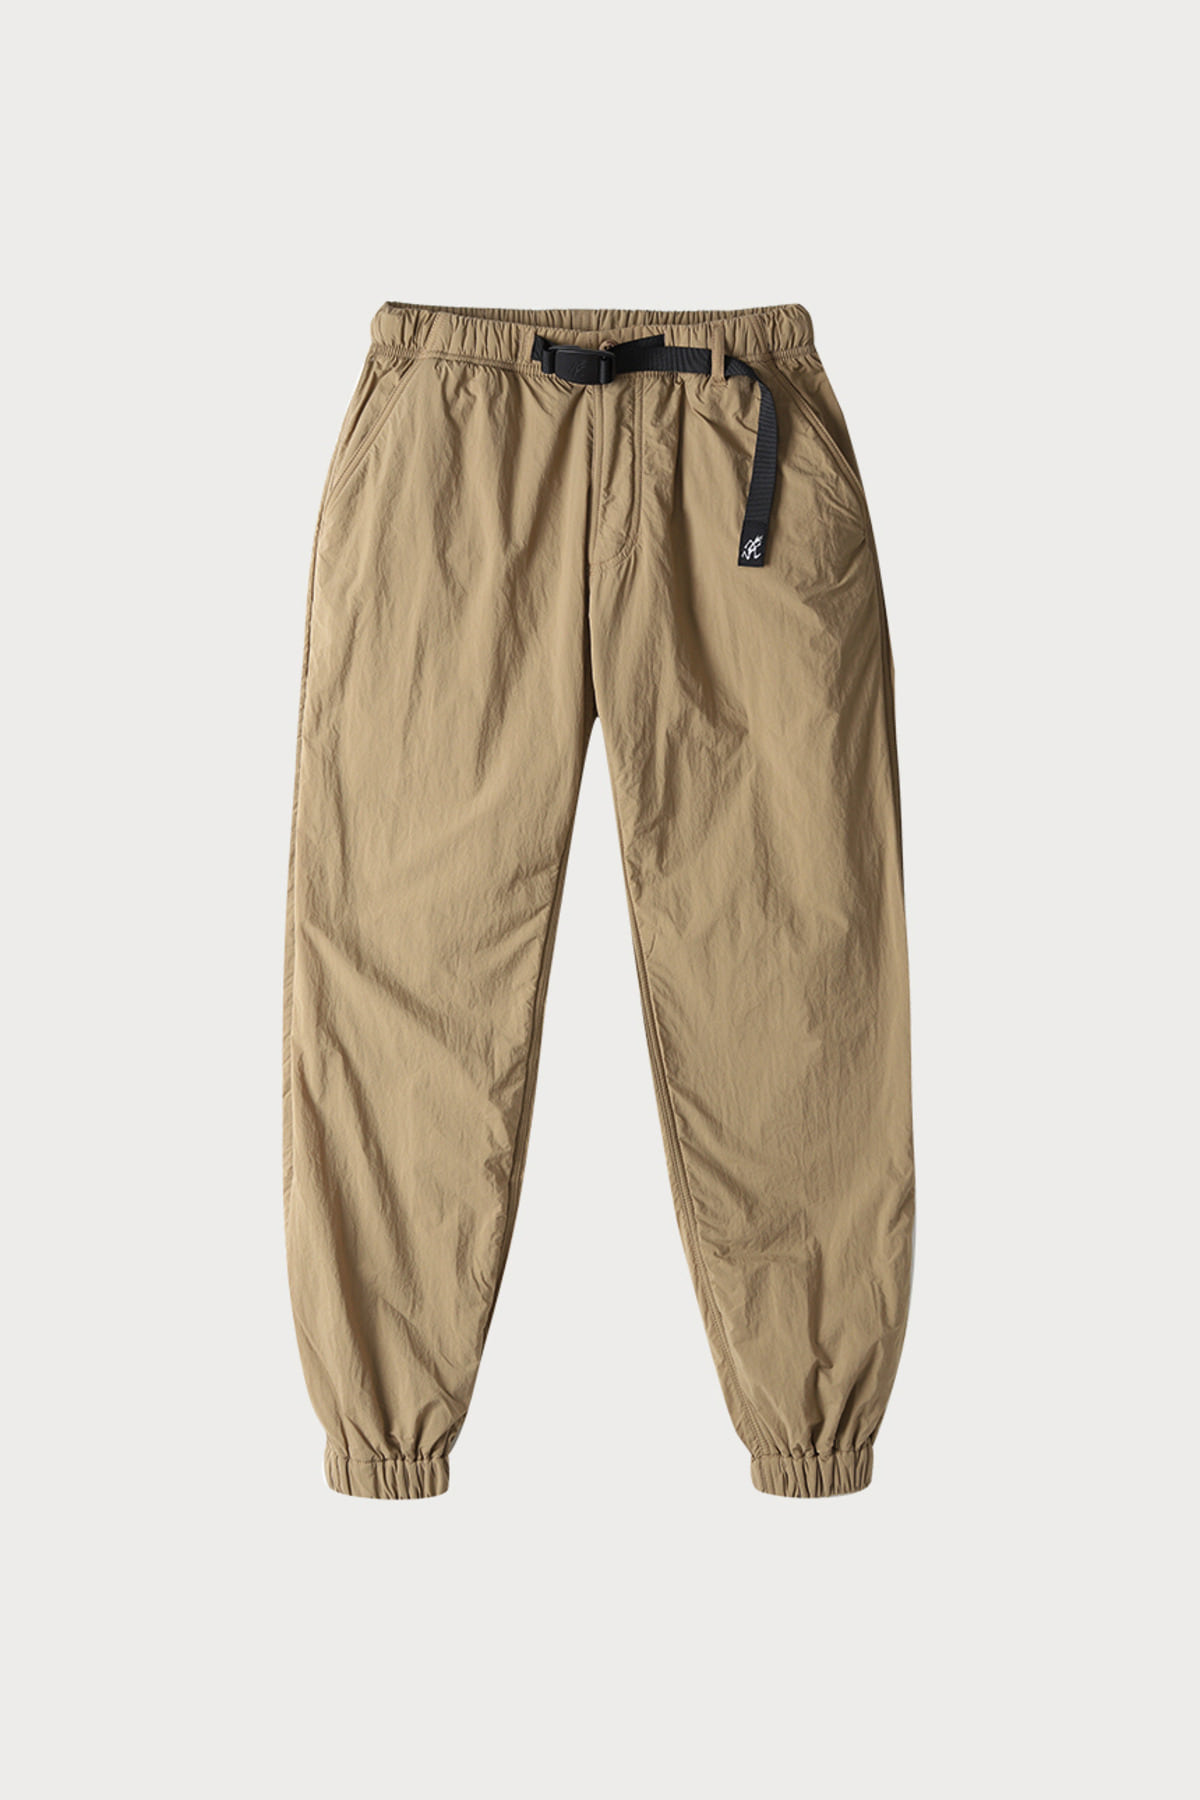 NYLON FLEECE PANTS CHINO